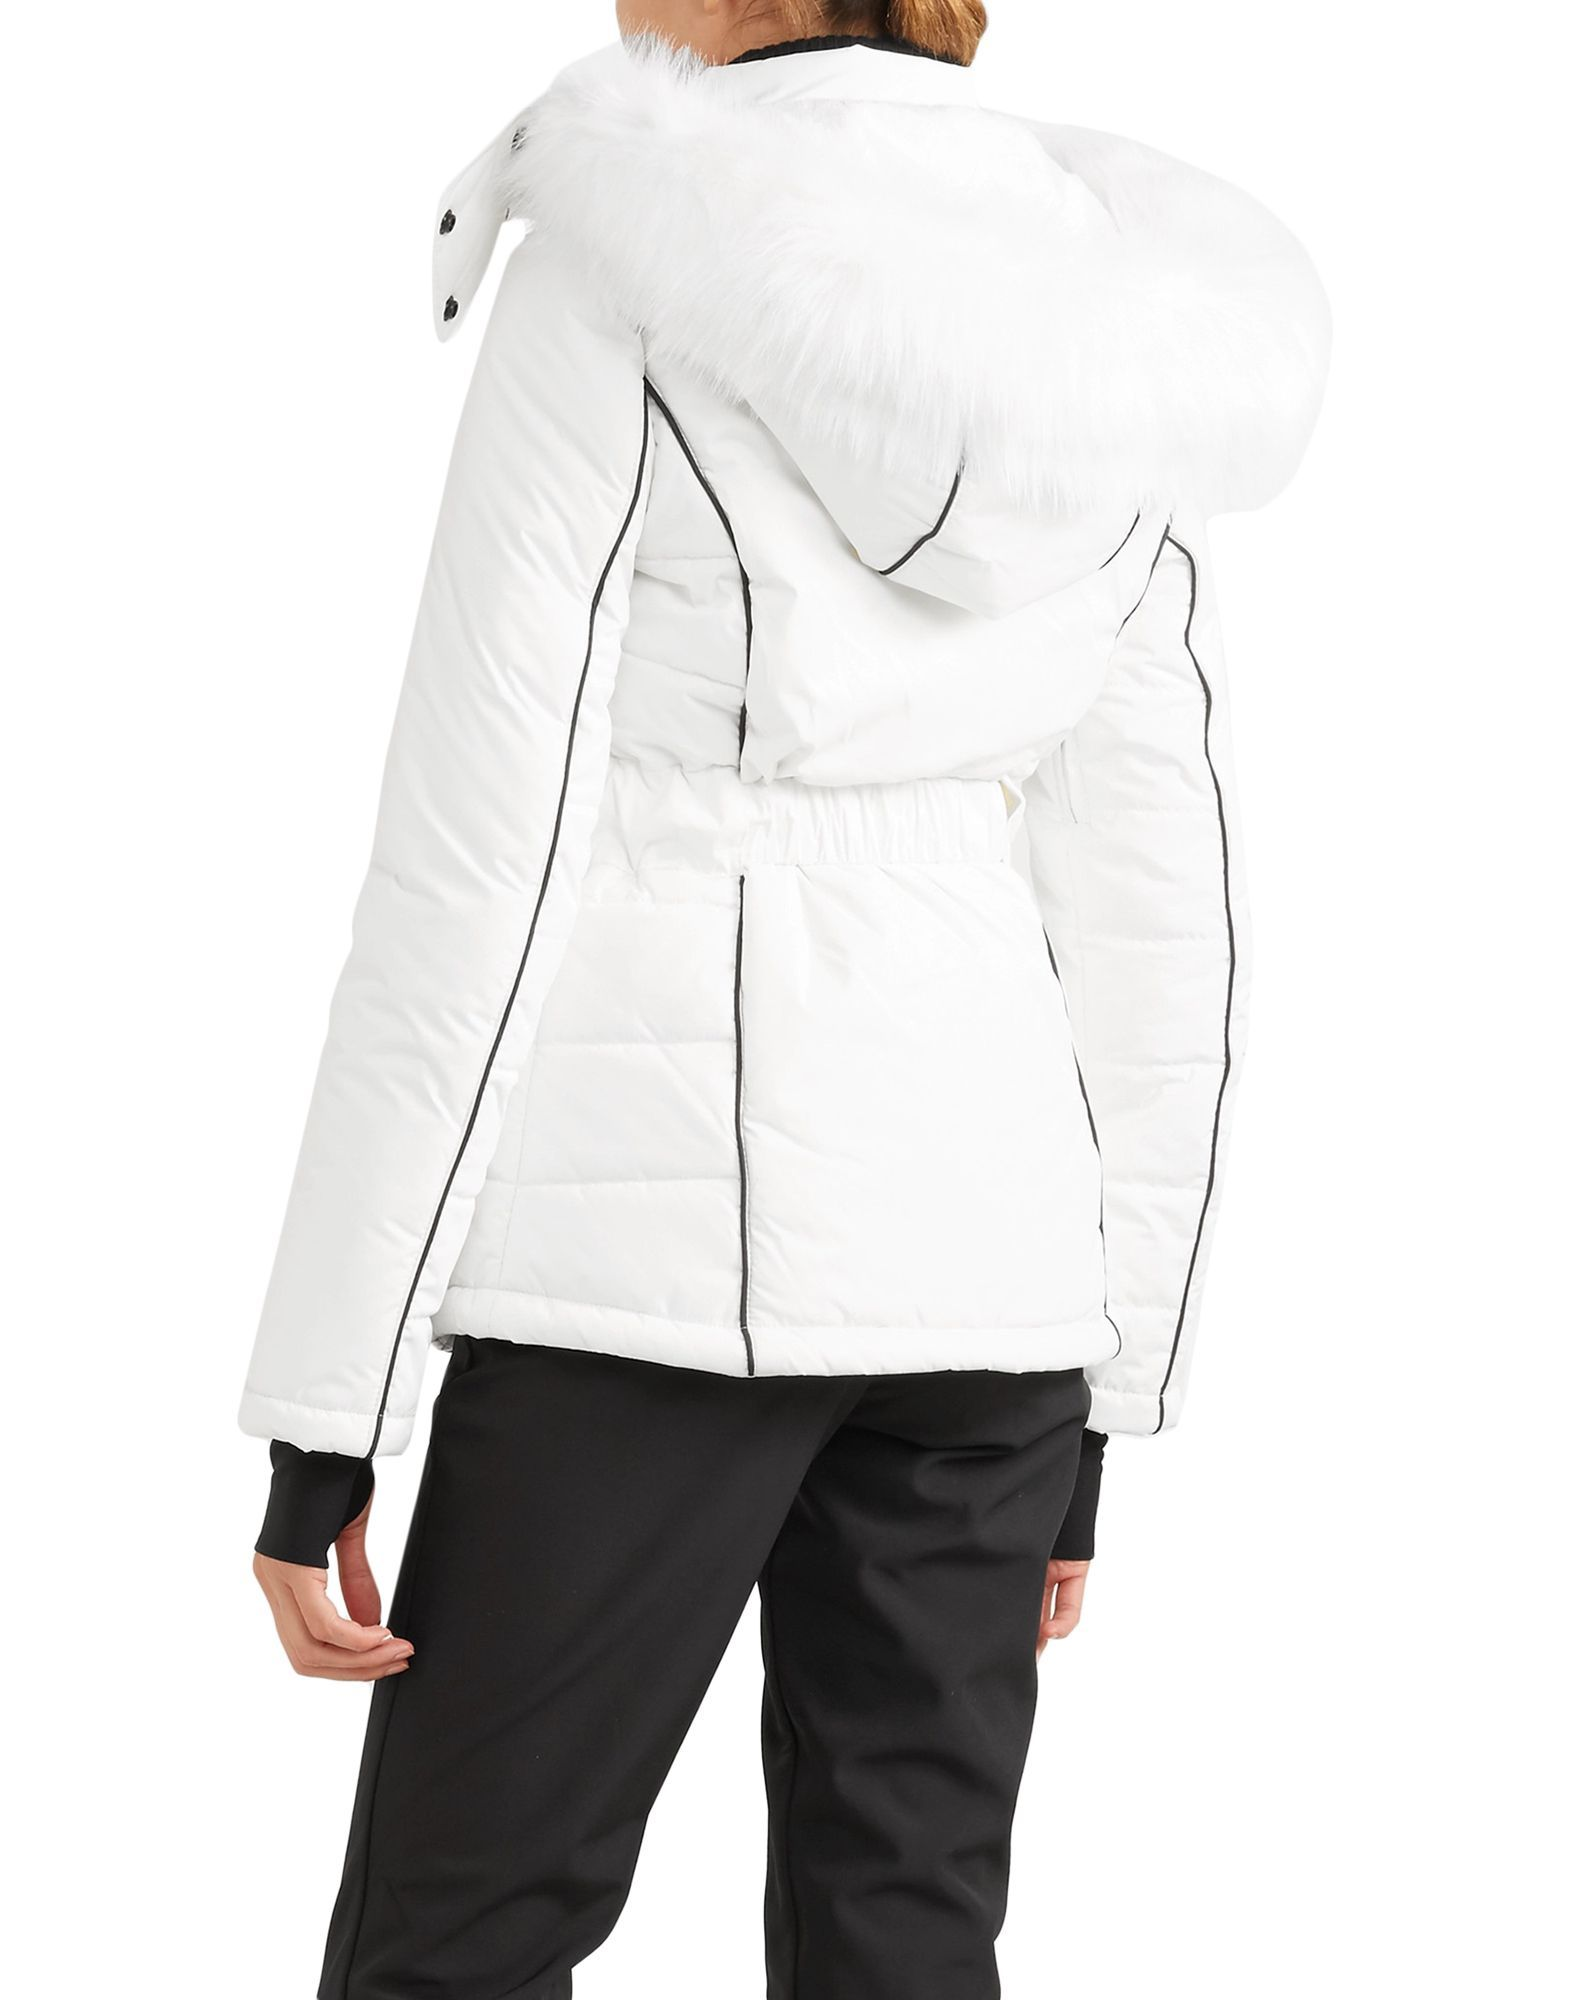 Topshop White Techno Fabric Belted Ski Jacket With Faux Fur Trim